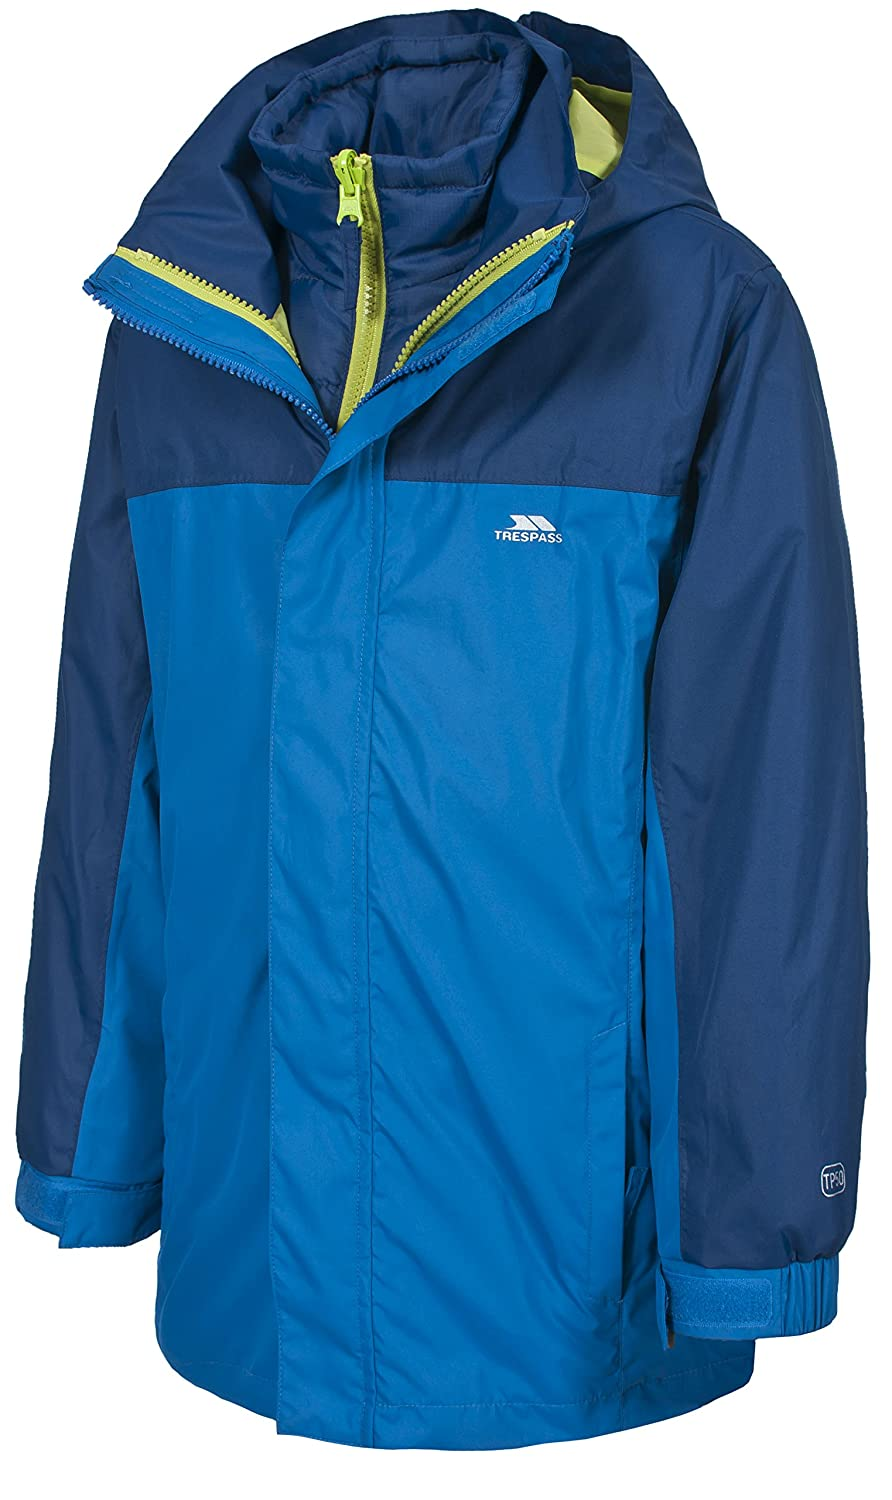 Trespass Maddox Kinder 3 in 1 Jacke, Wasserfest